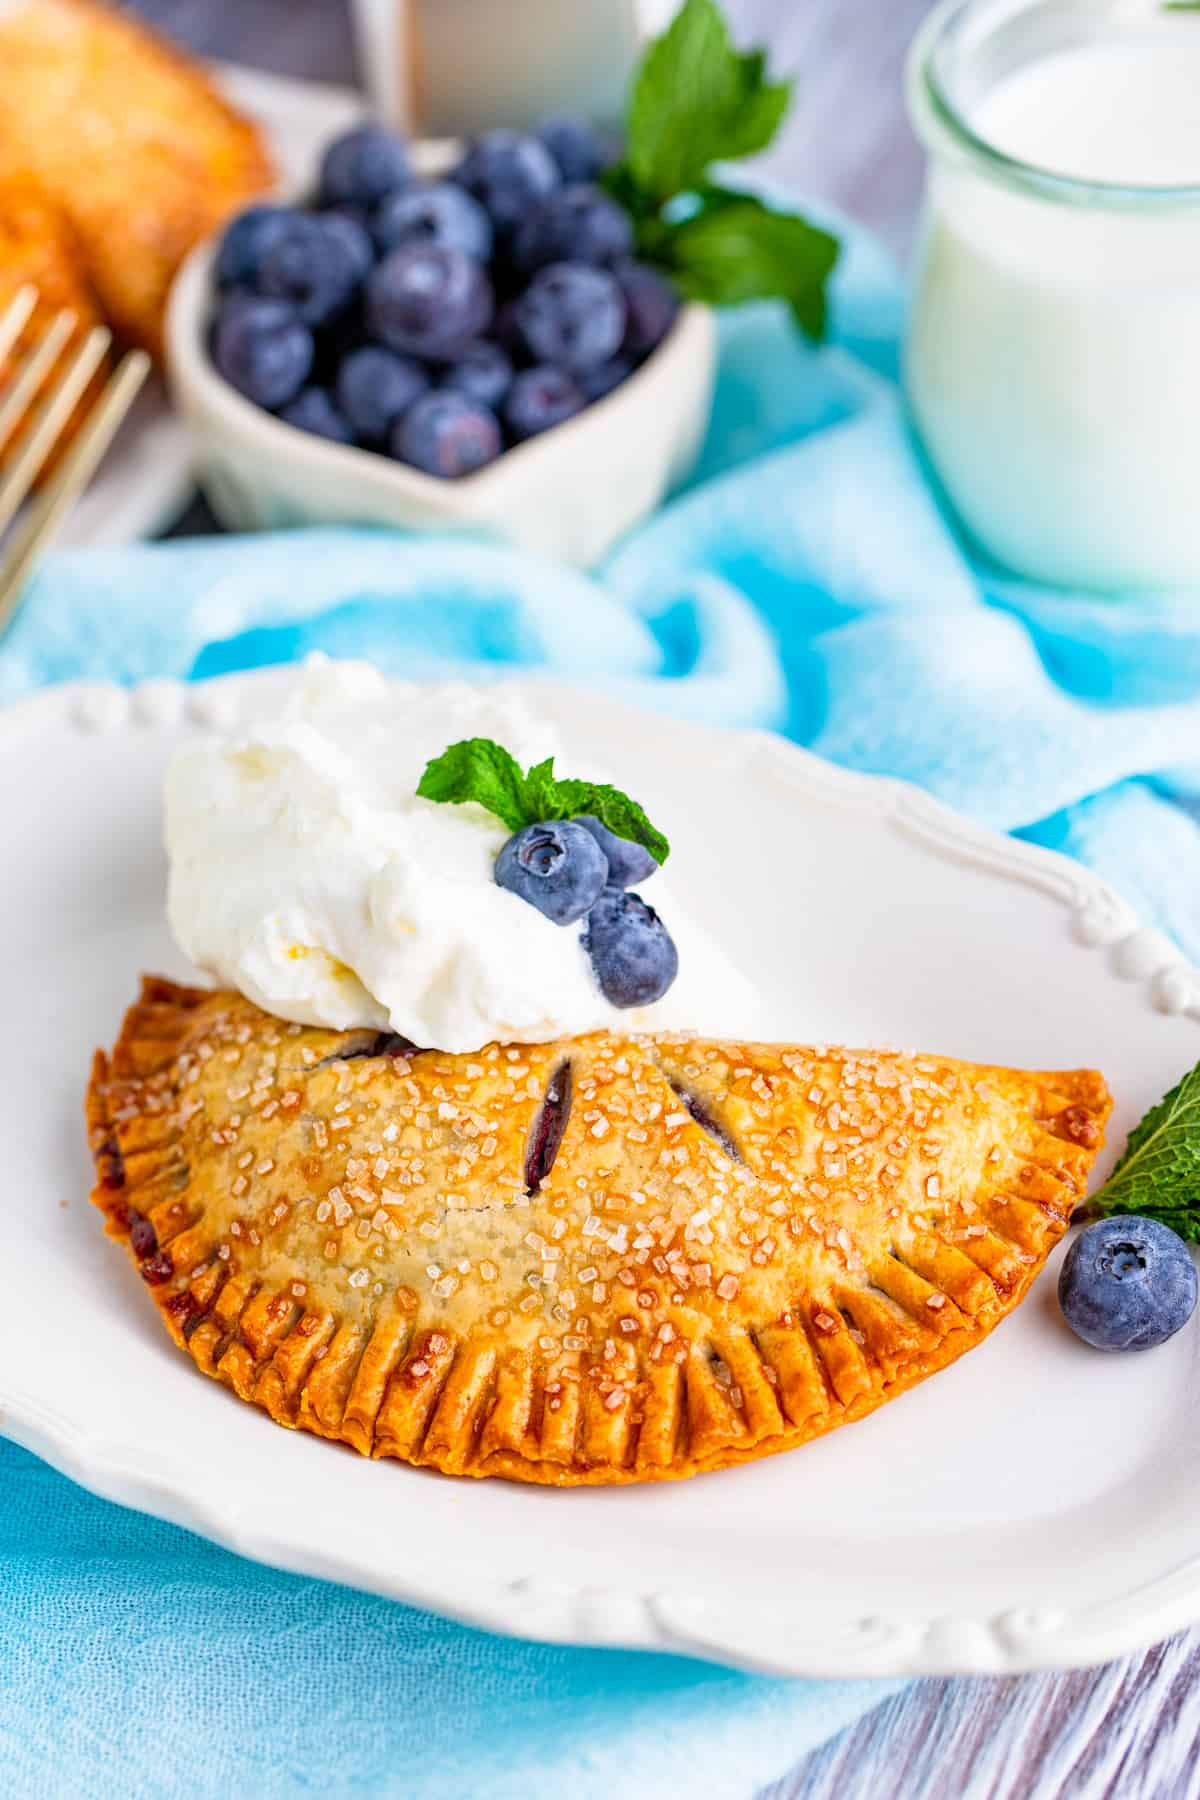 One Air Fryer Blueberry Hand Pie on plate with whipped topping and blueberries